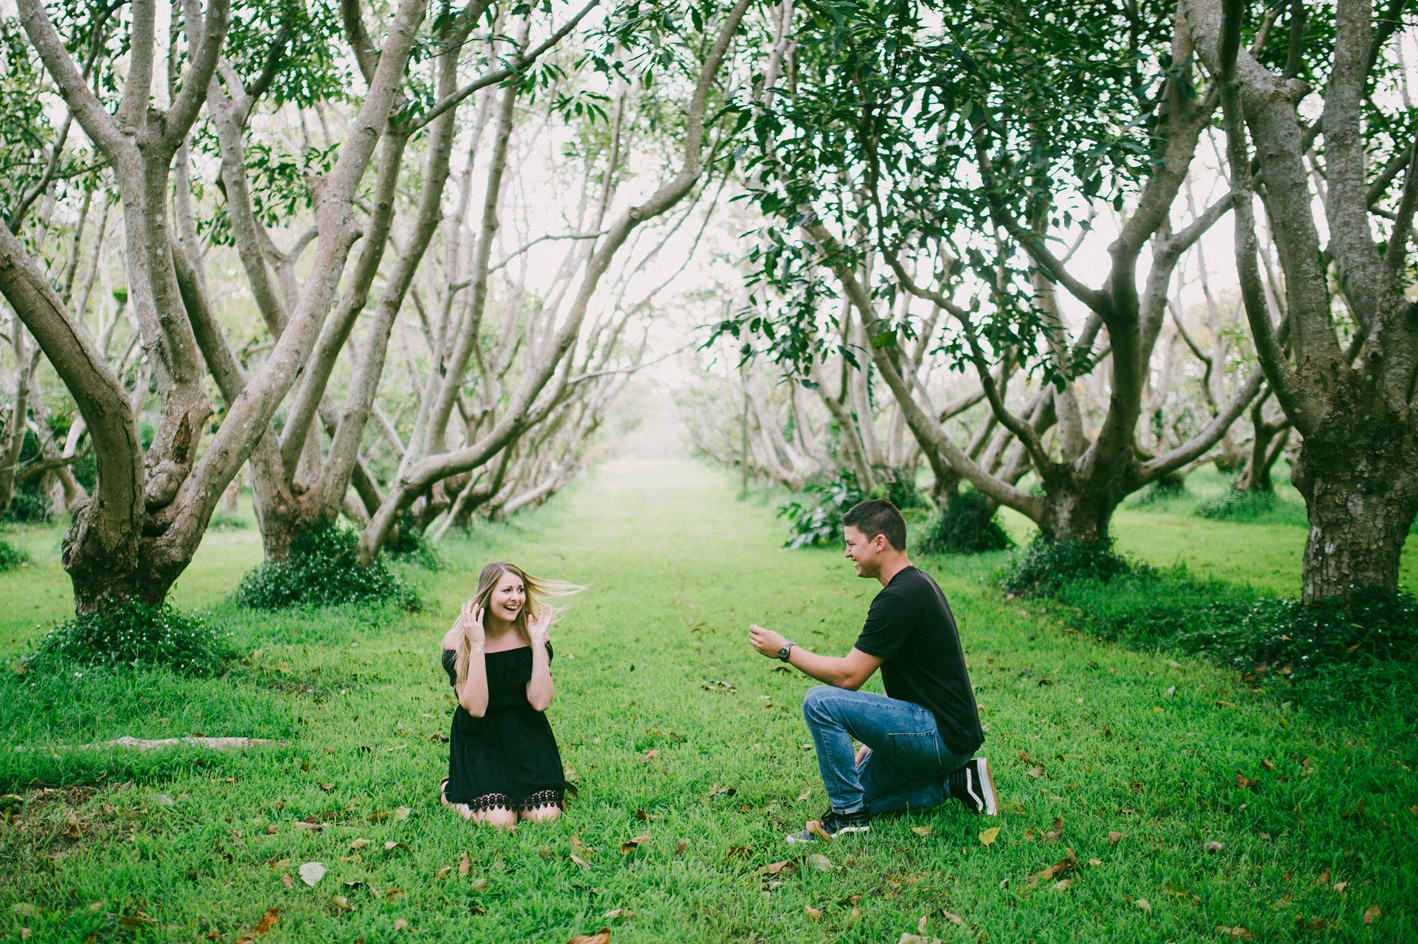 016-proposal-dan-ash_sophie-baker-photography